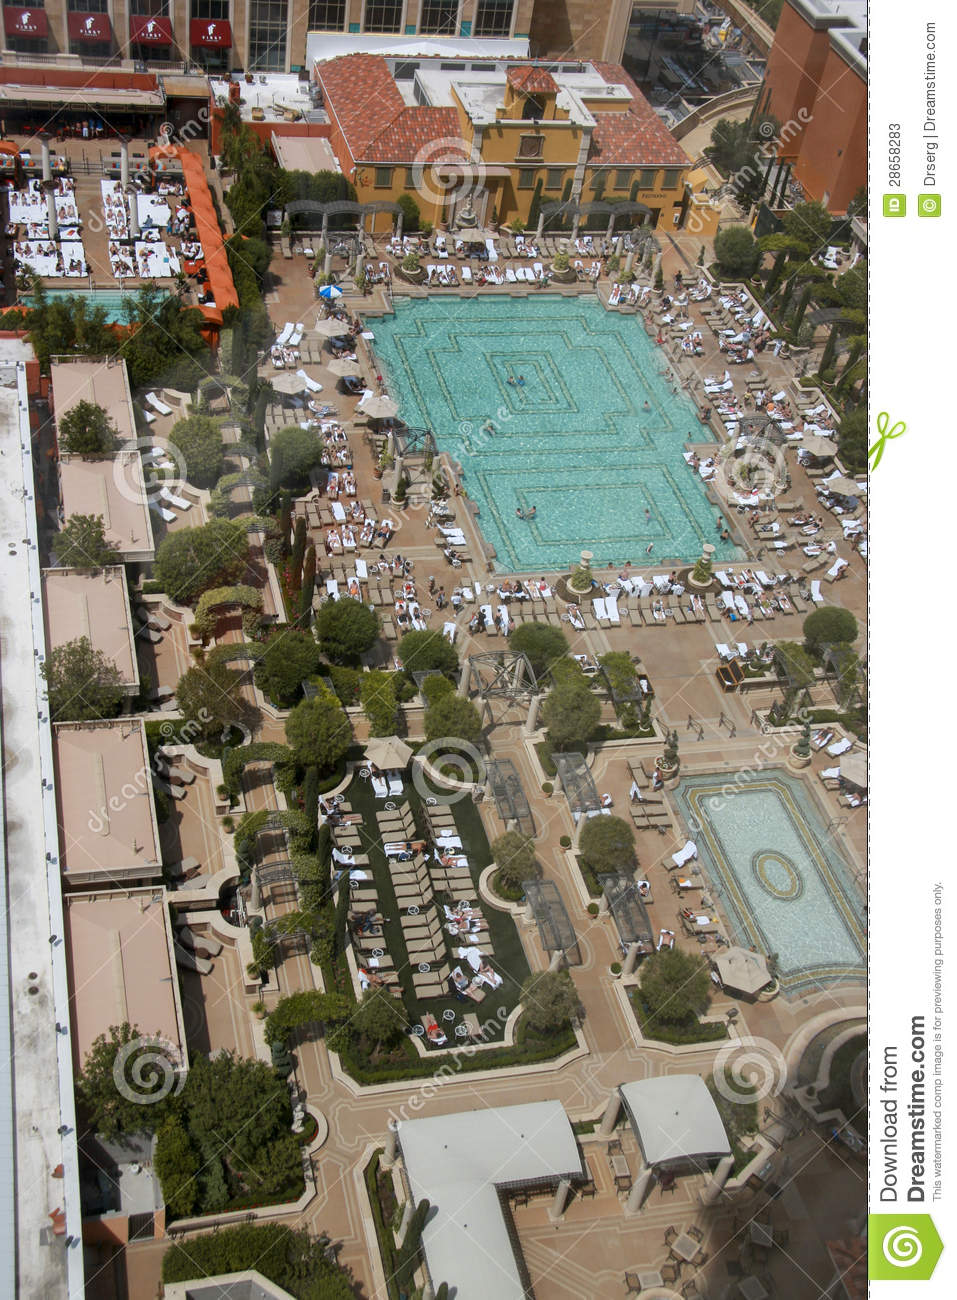 Aerial View On Venetian Hotel Roof Placed Swimming Pool Editorial Stock Photo Image 28658283